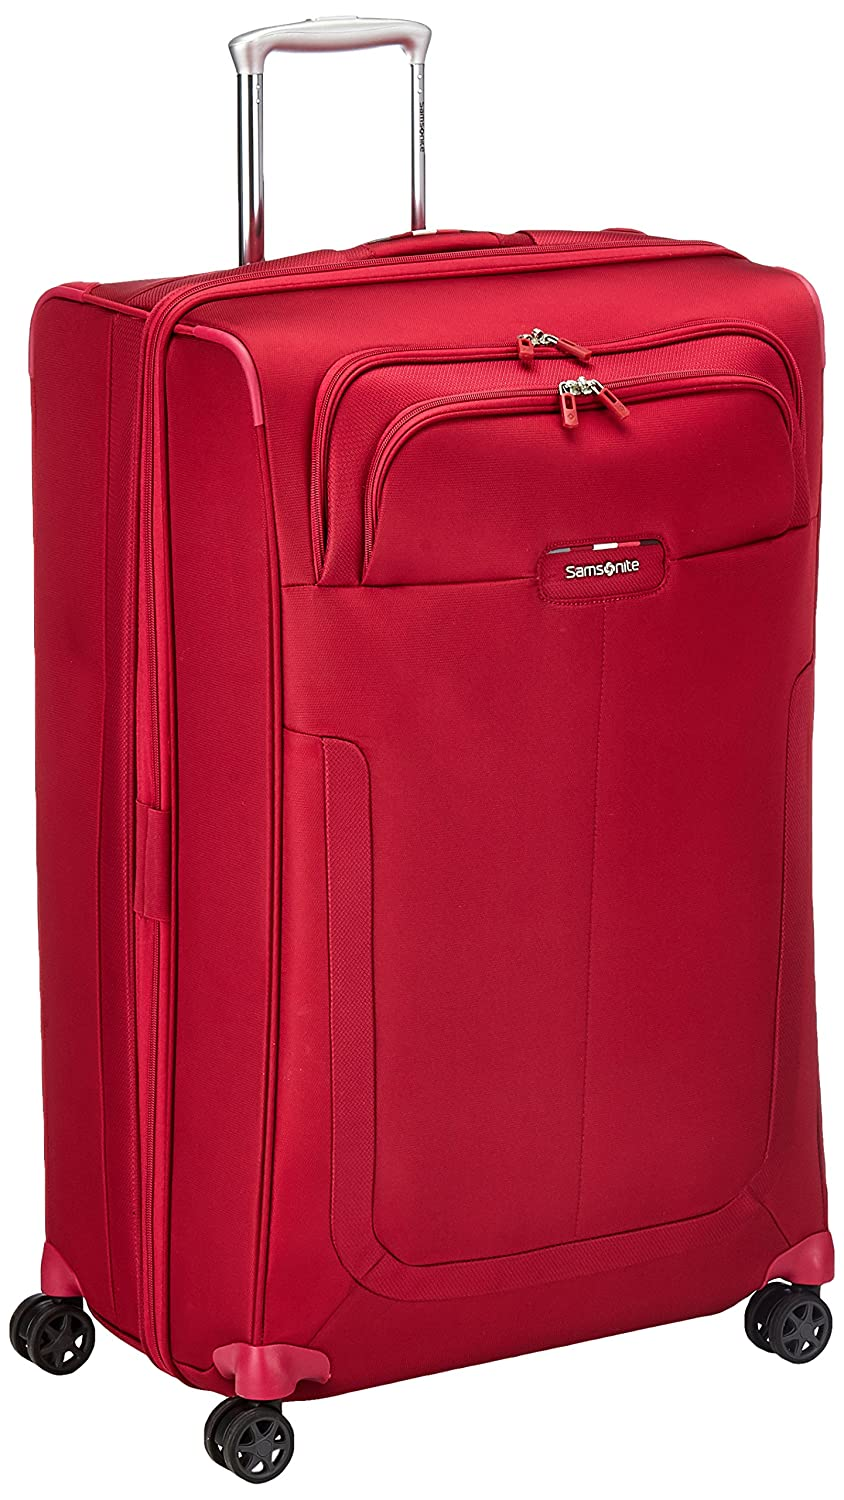 Valise cabine souple Samsonite Duosphere 55 cm Granita Red rouge